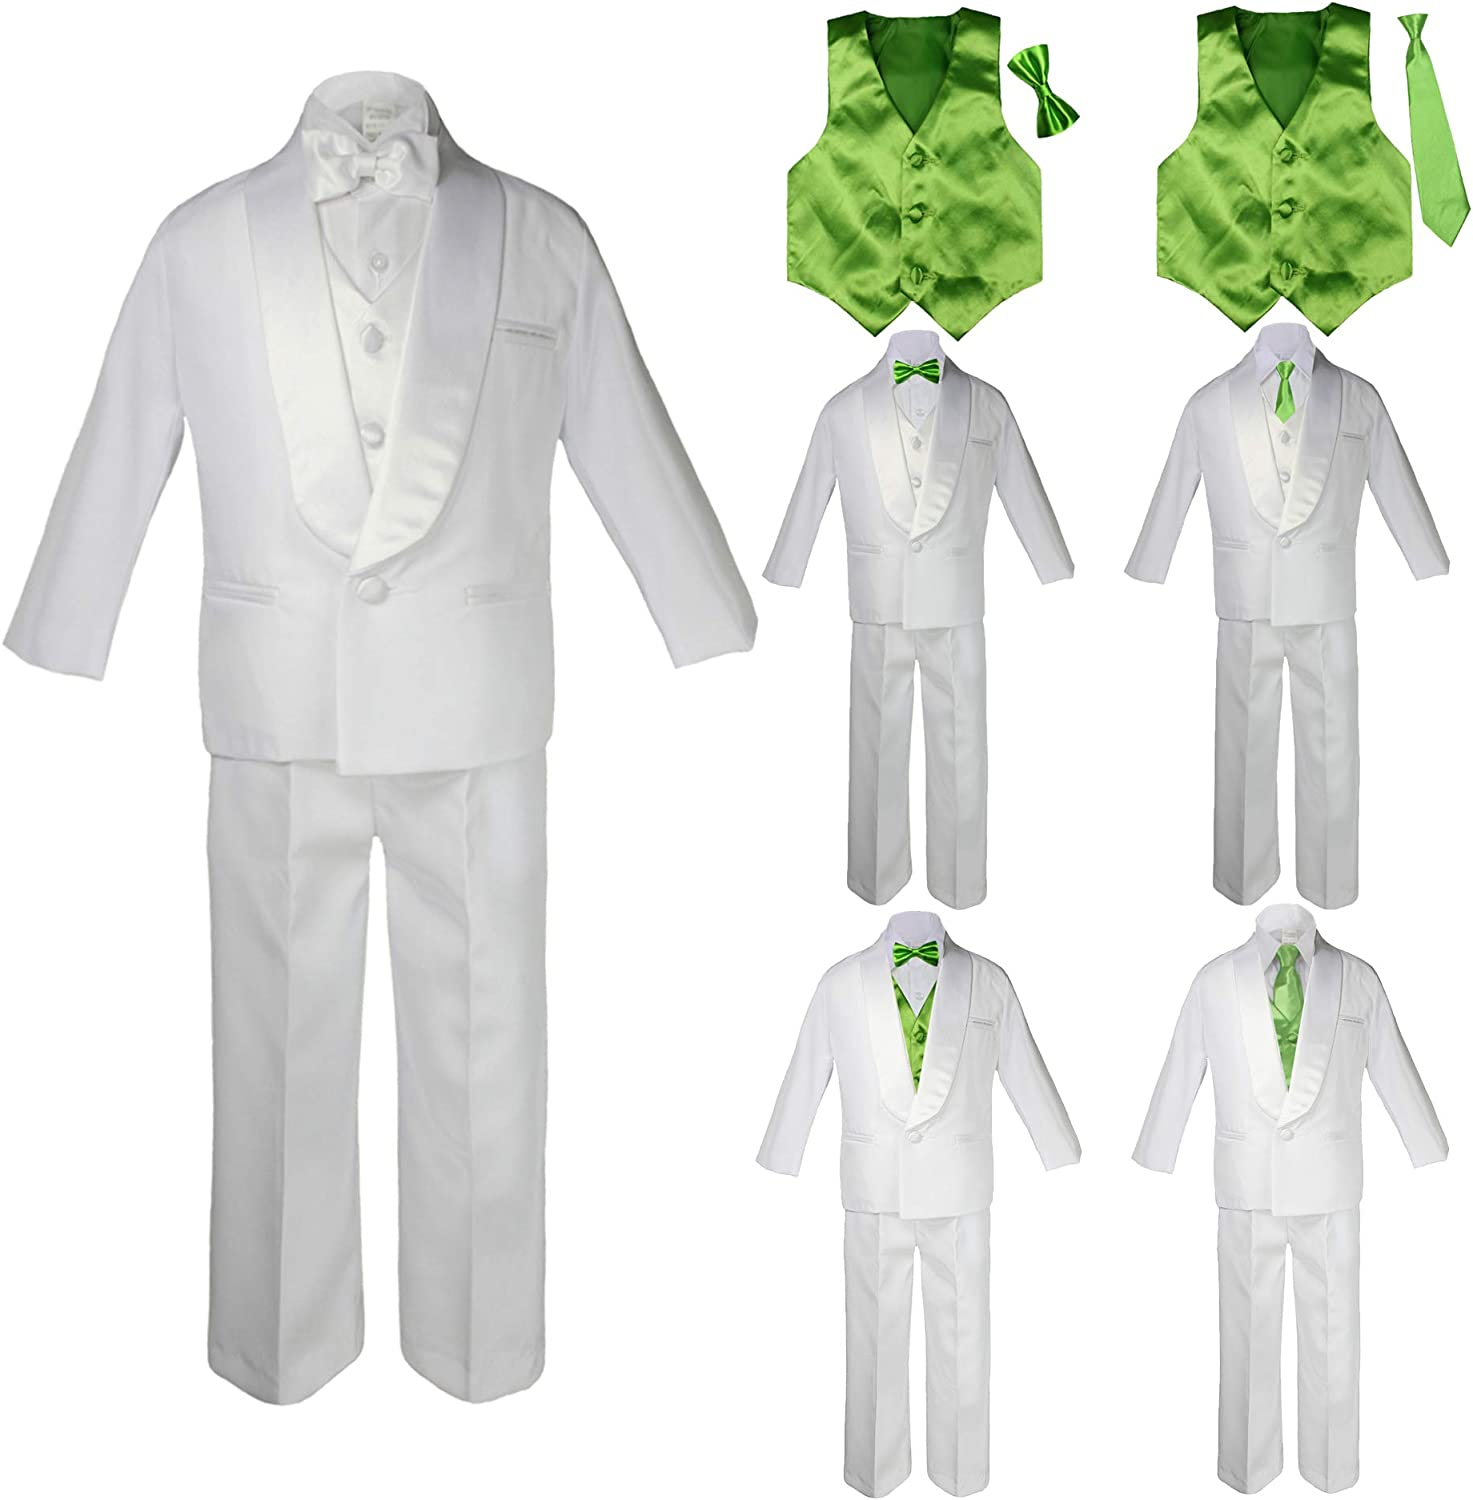 Unotux 4 Pcs Formal Wedding Boy Ivory Satin Vest Bow Tie Set Suit from Baby Teen